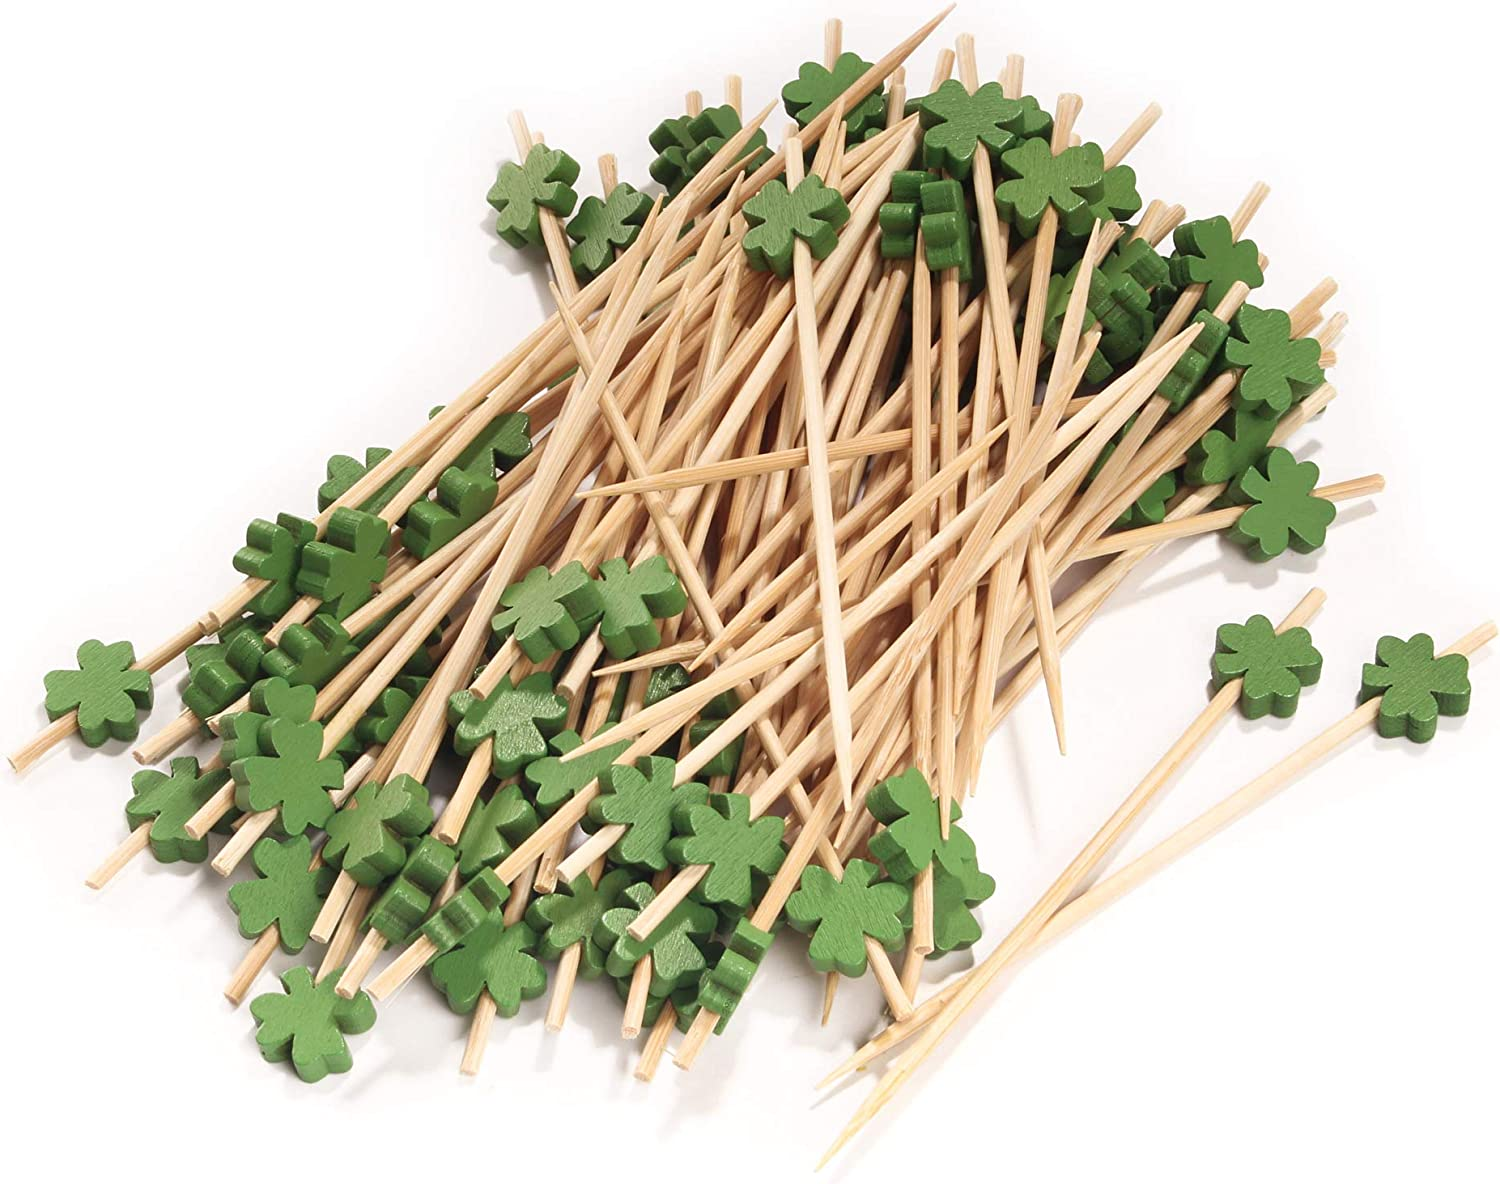 Luck of The Irish Party Supplies BambooMN 5.9 Inch Decorative Green Clover Bamboo Cocktail Sandwich Fruit Swizzle Picks 300 Pieces